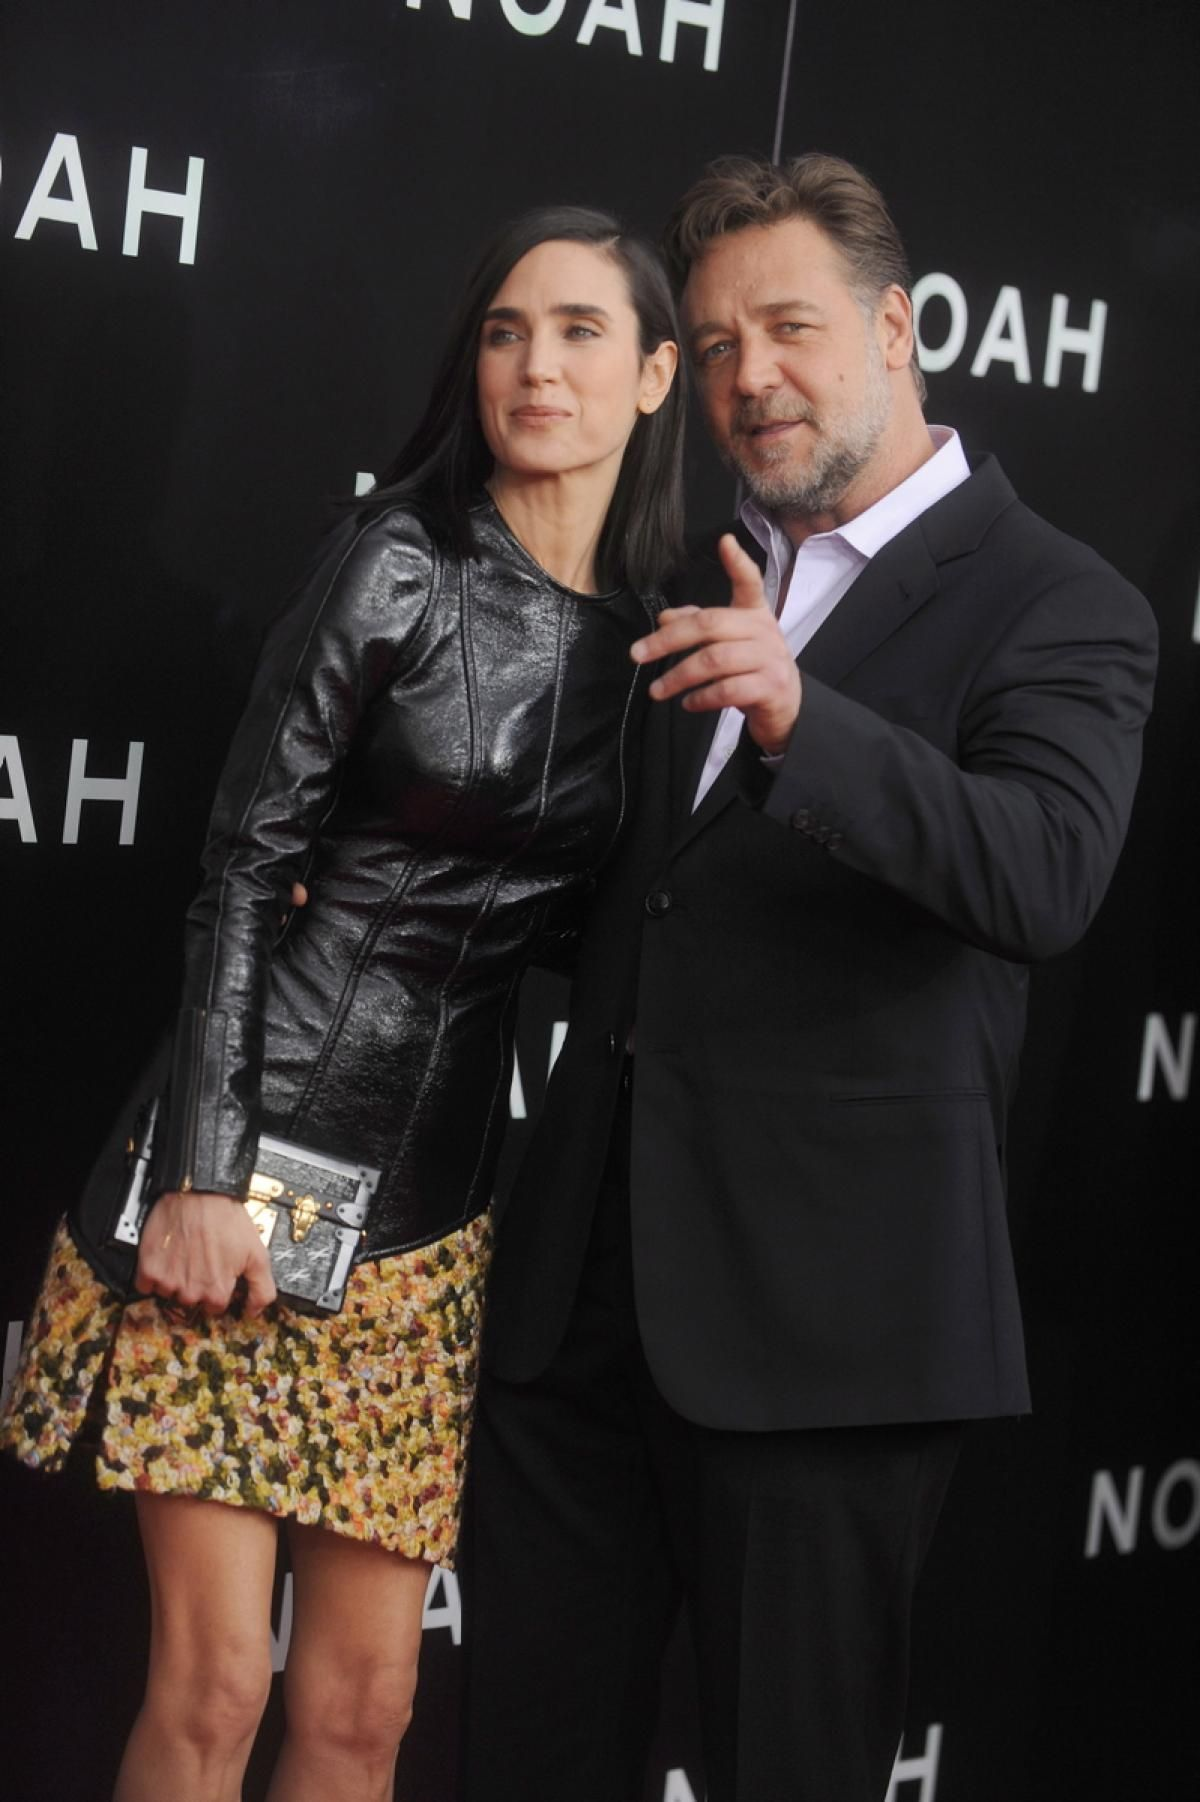 Russell Crowe and Jennifer Connelly - Dating Gossip News Photos